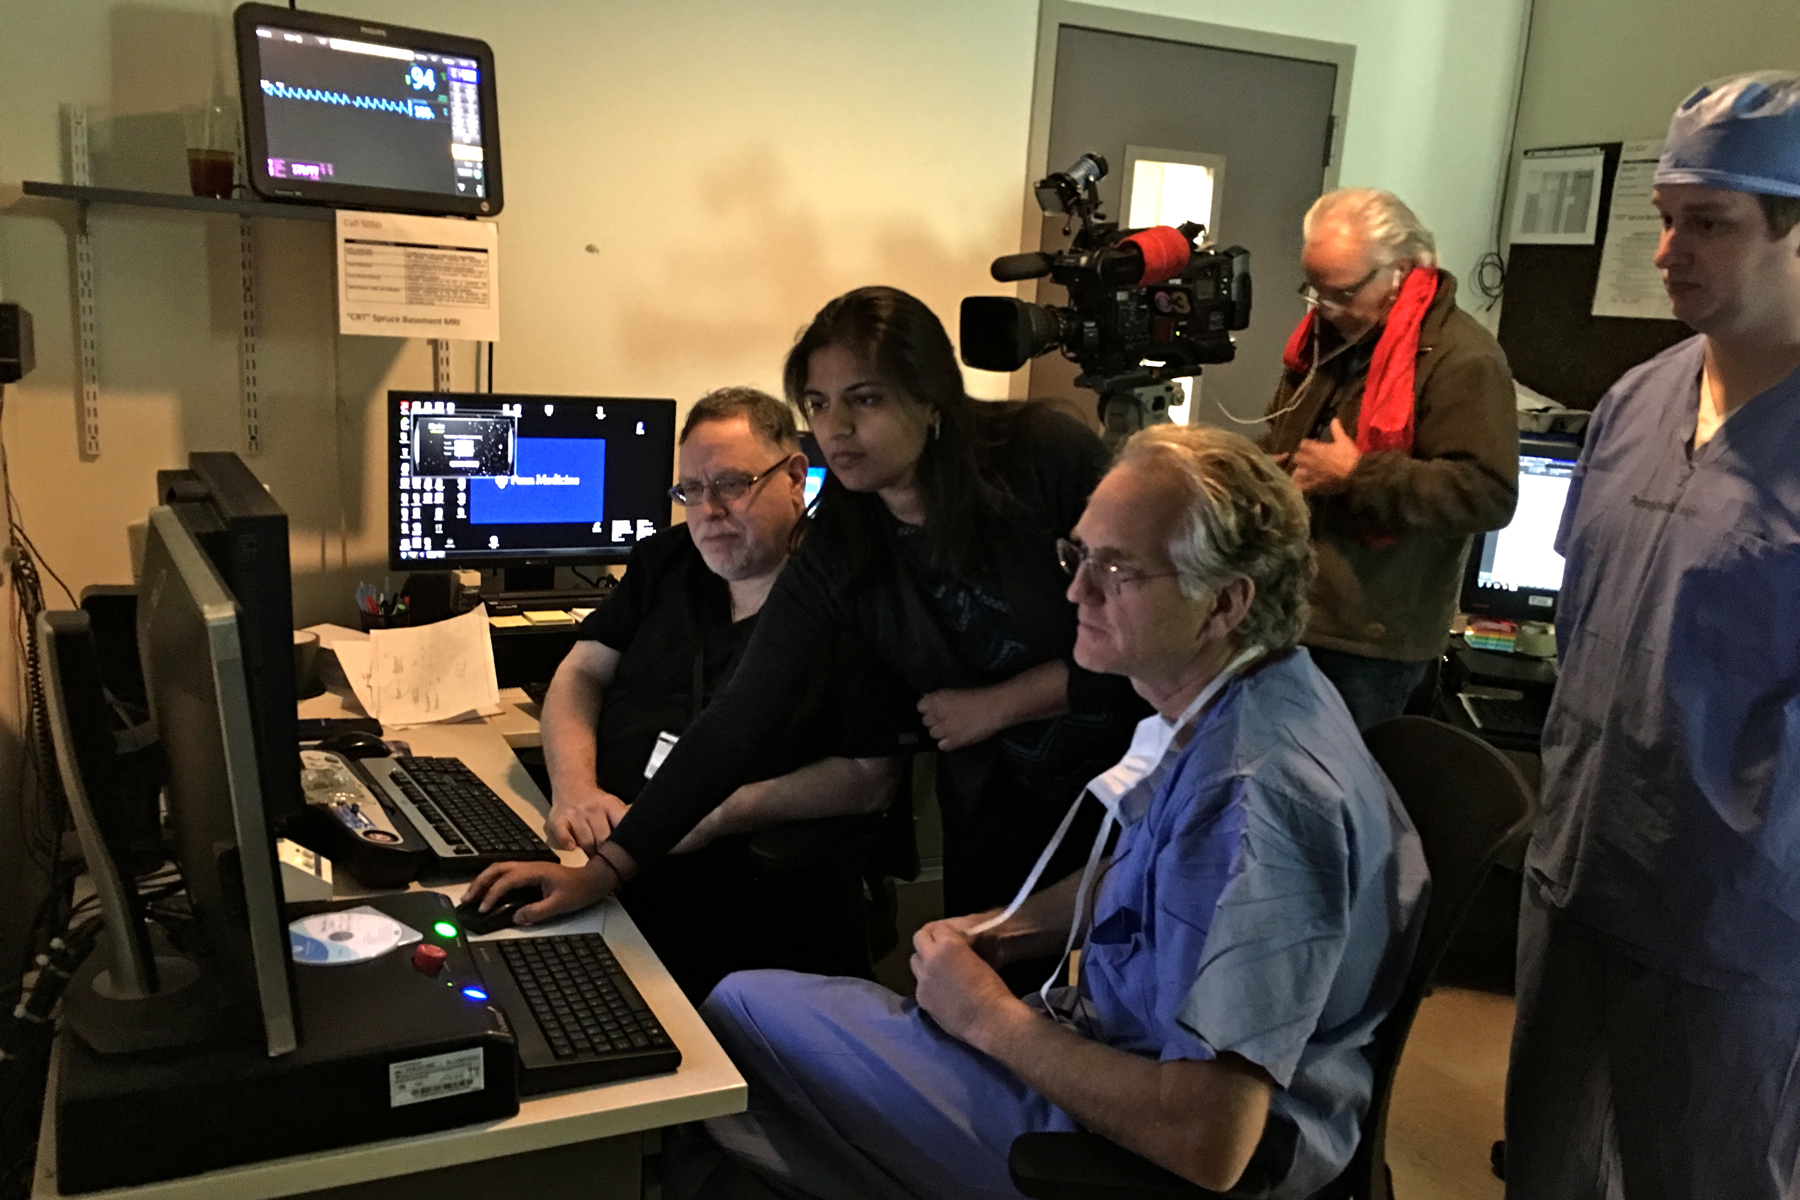 Dr. Gordon Baltuch oversees MRI and CT scans as he preps for an MRI-guided targeted ultrasound procedure.